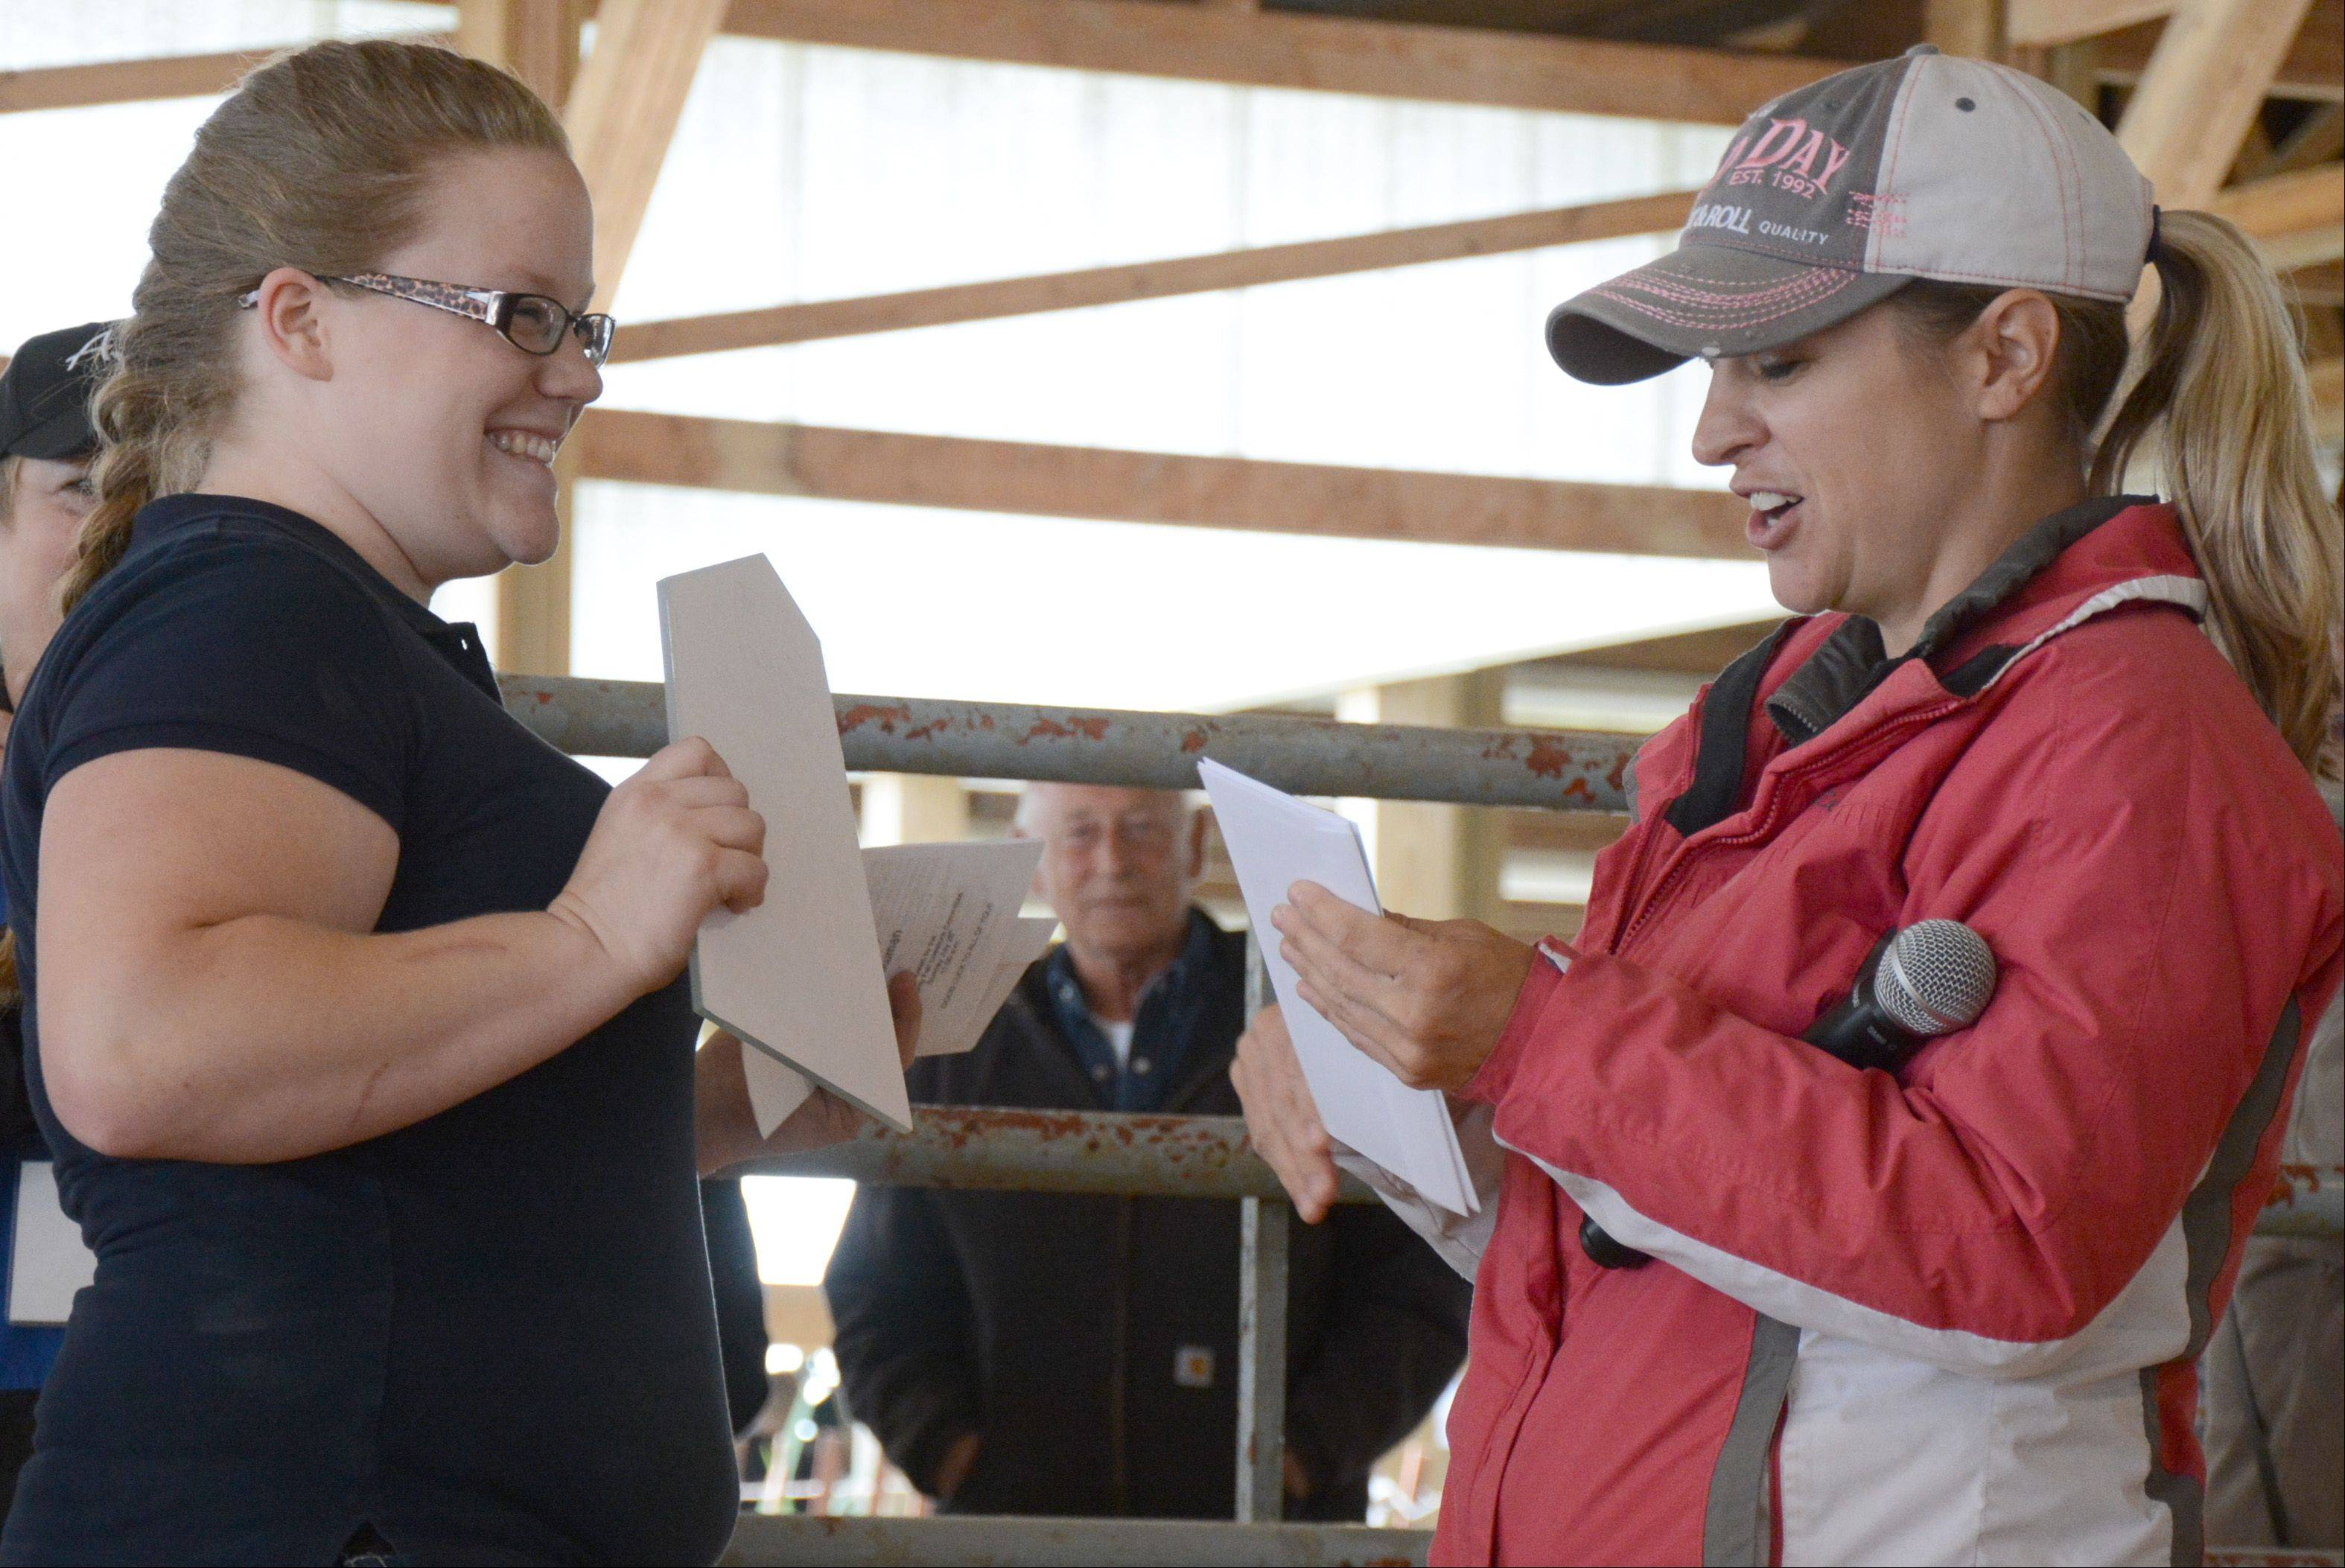 Shelby Grinnell, left, of Walworth, Wis., receives a plaque and a $300 check from Susie Fisher, of Zion, after winning first place in the Master Showman competition at the Lake County Fair Sunday.